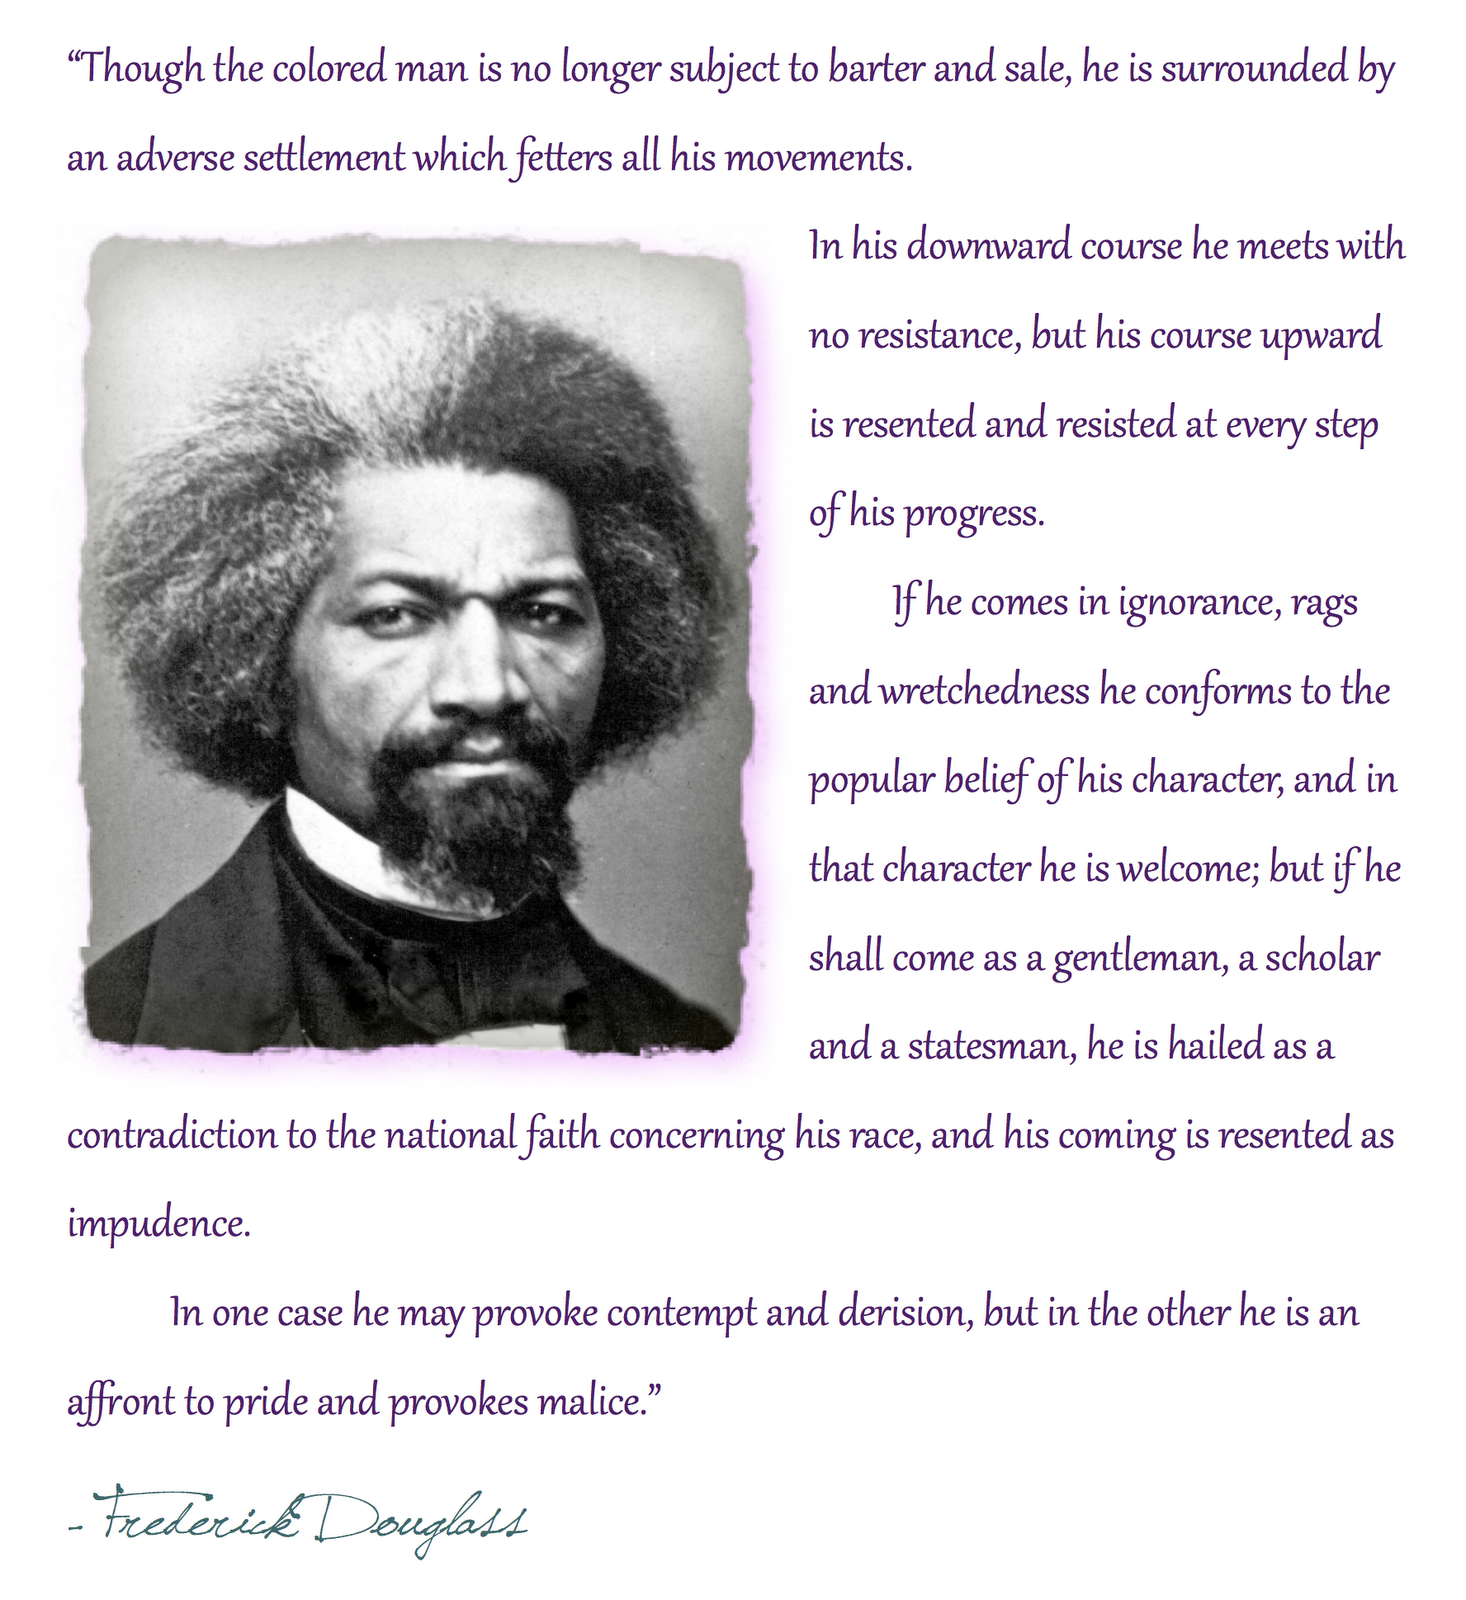 a biography of frederick douglass one of the leaders of the abolitionist movement This list will consist of prominent abolitionist leaders and  will have a one-paragraph text panel  and african american abolitionist frederick douglass.